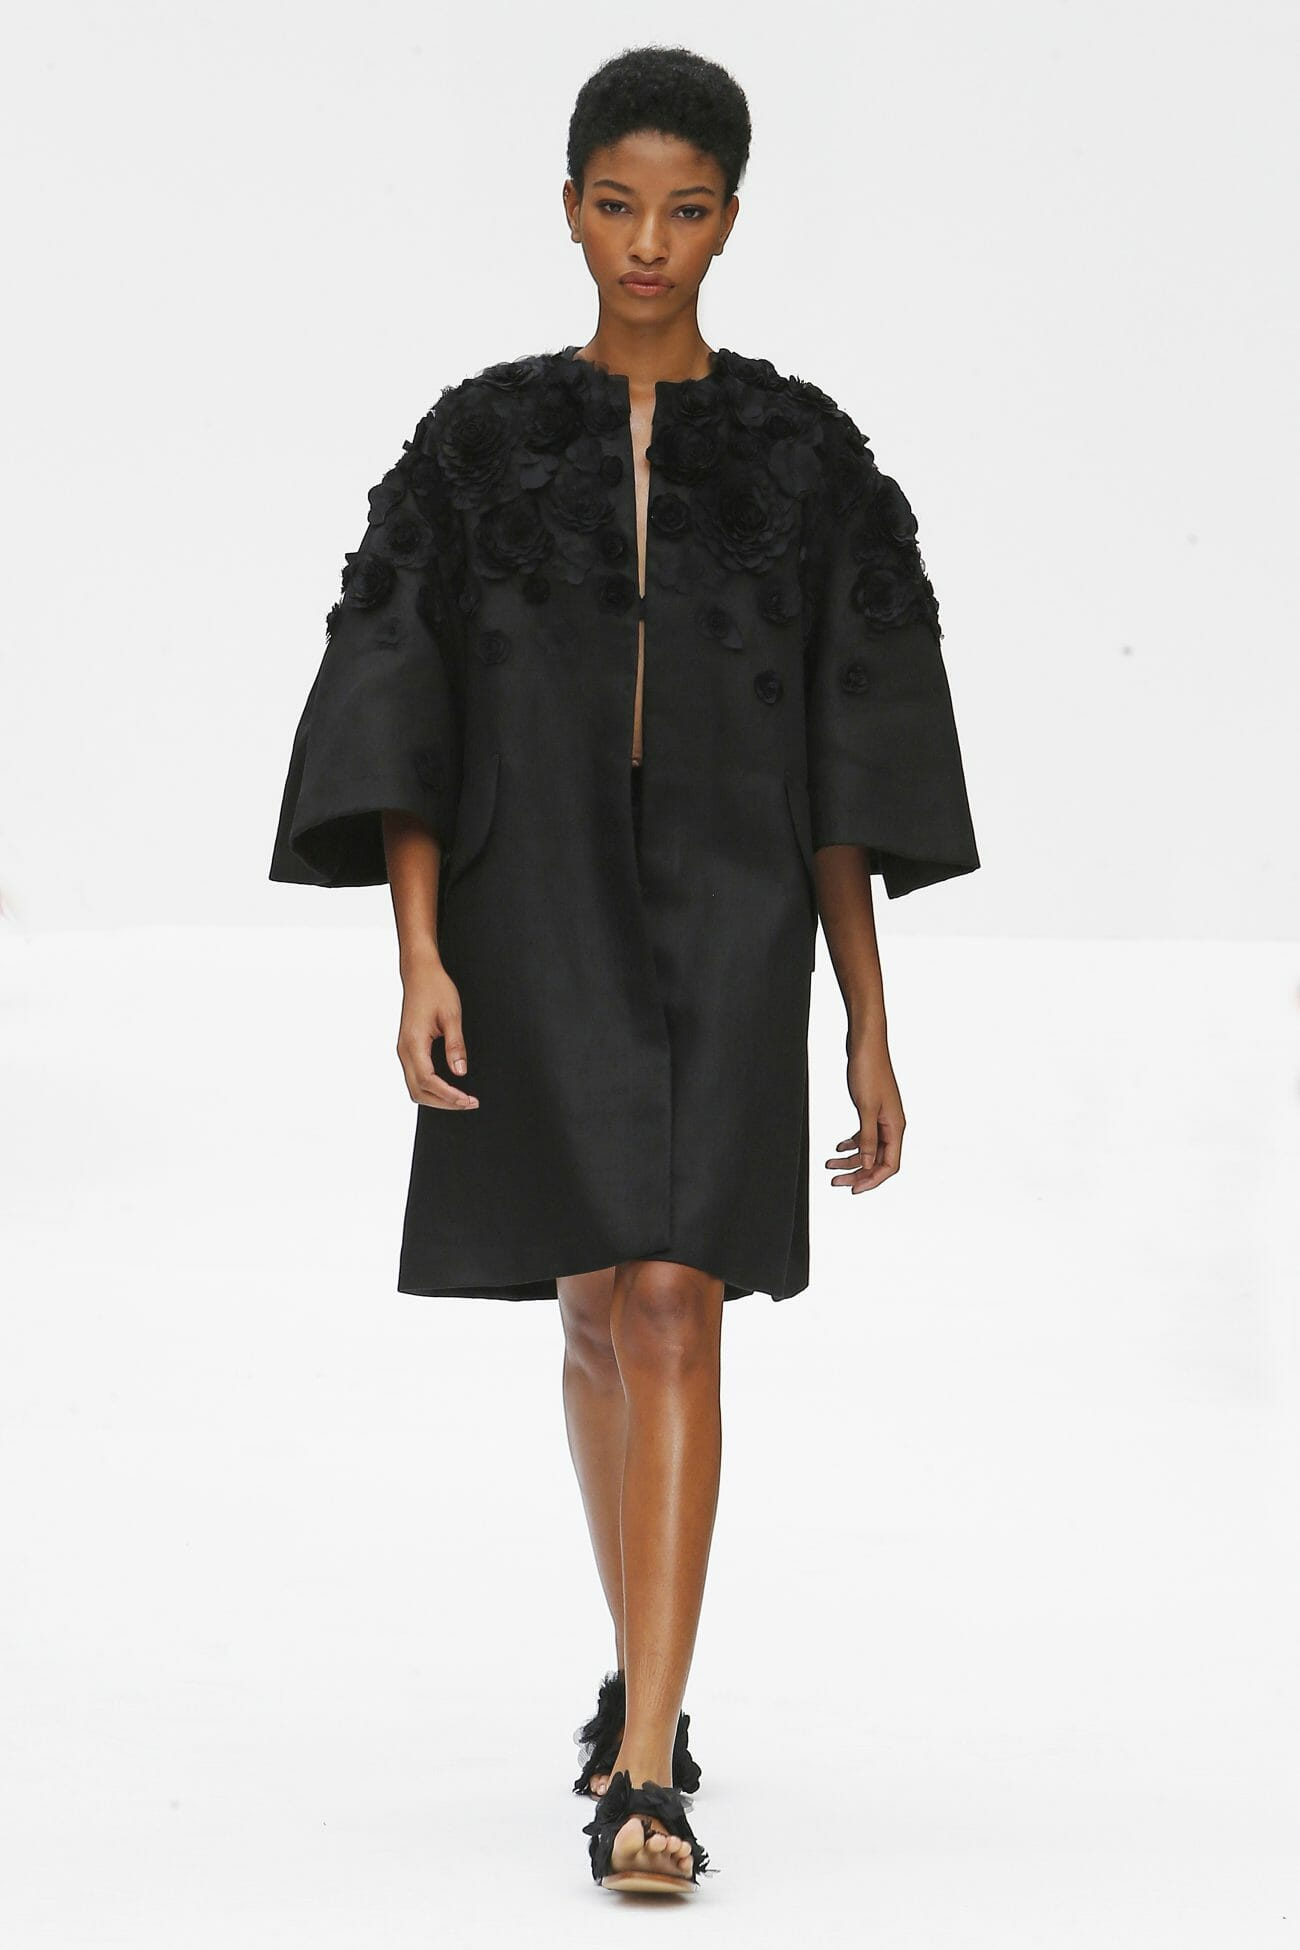 Carolina Herrera New York black dress